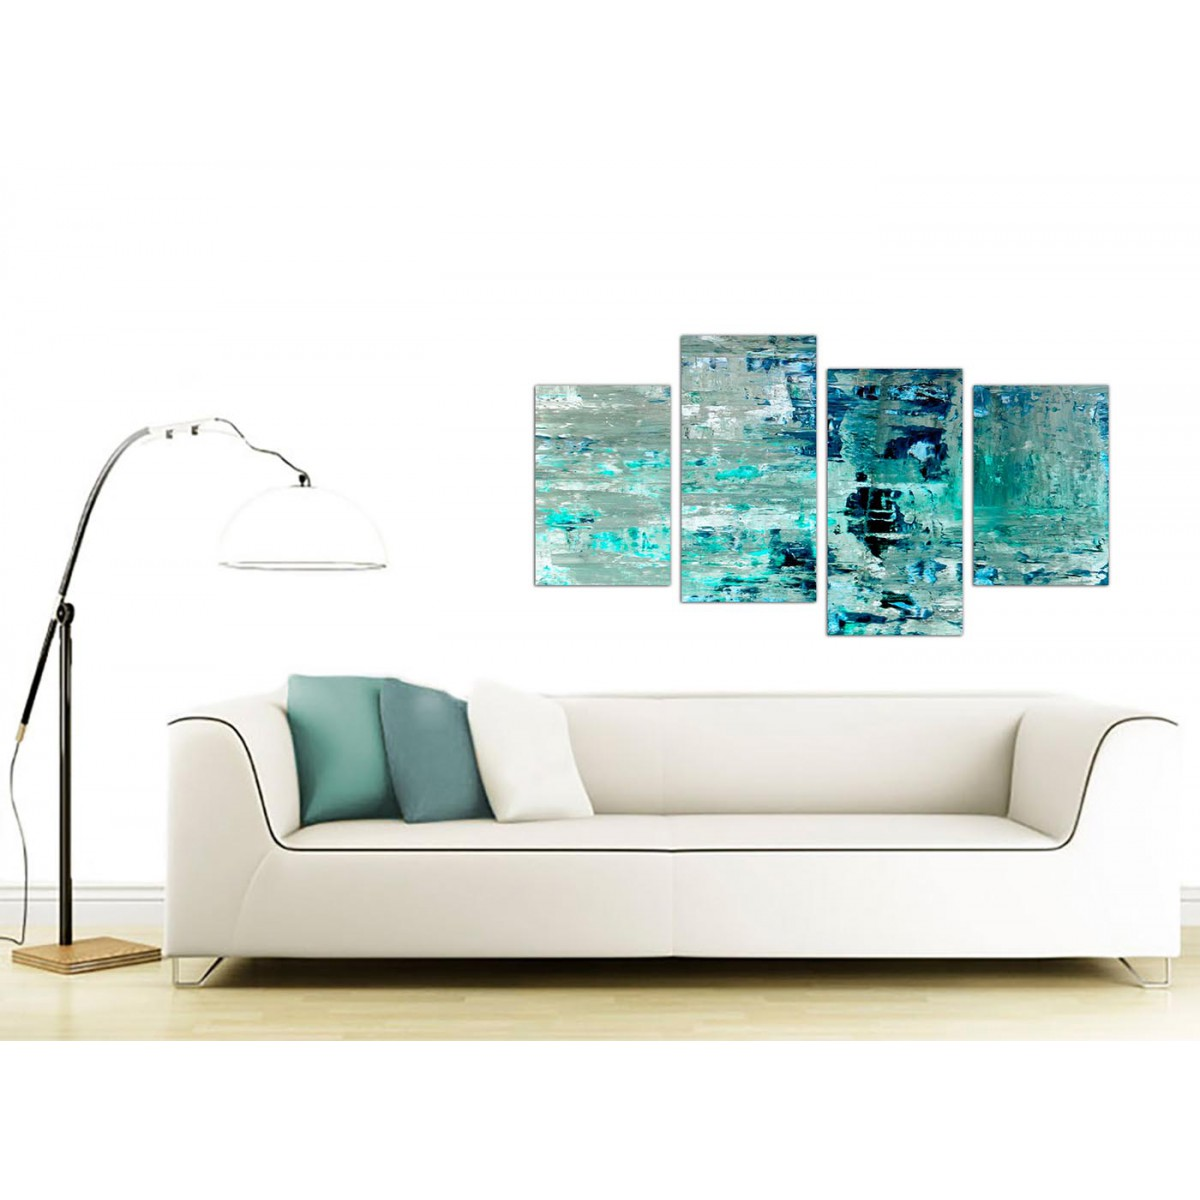 Large Turquoise Teal Abstract Painting Wall Art Print